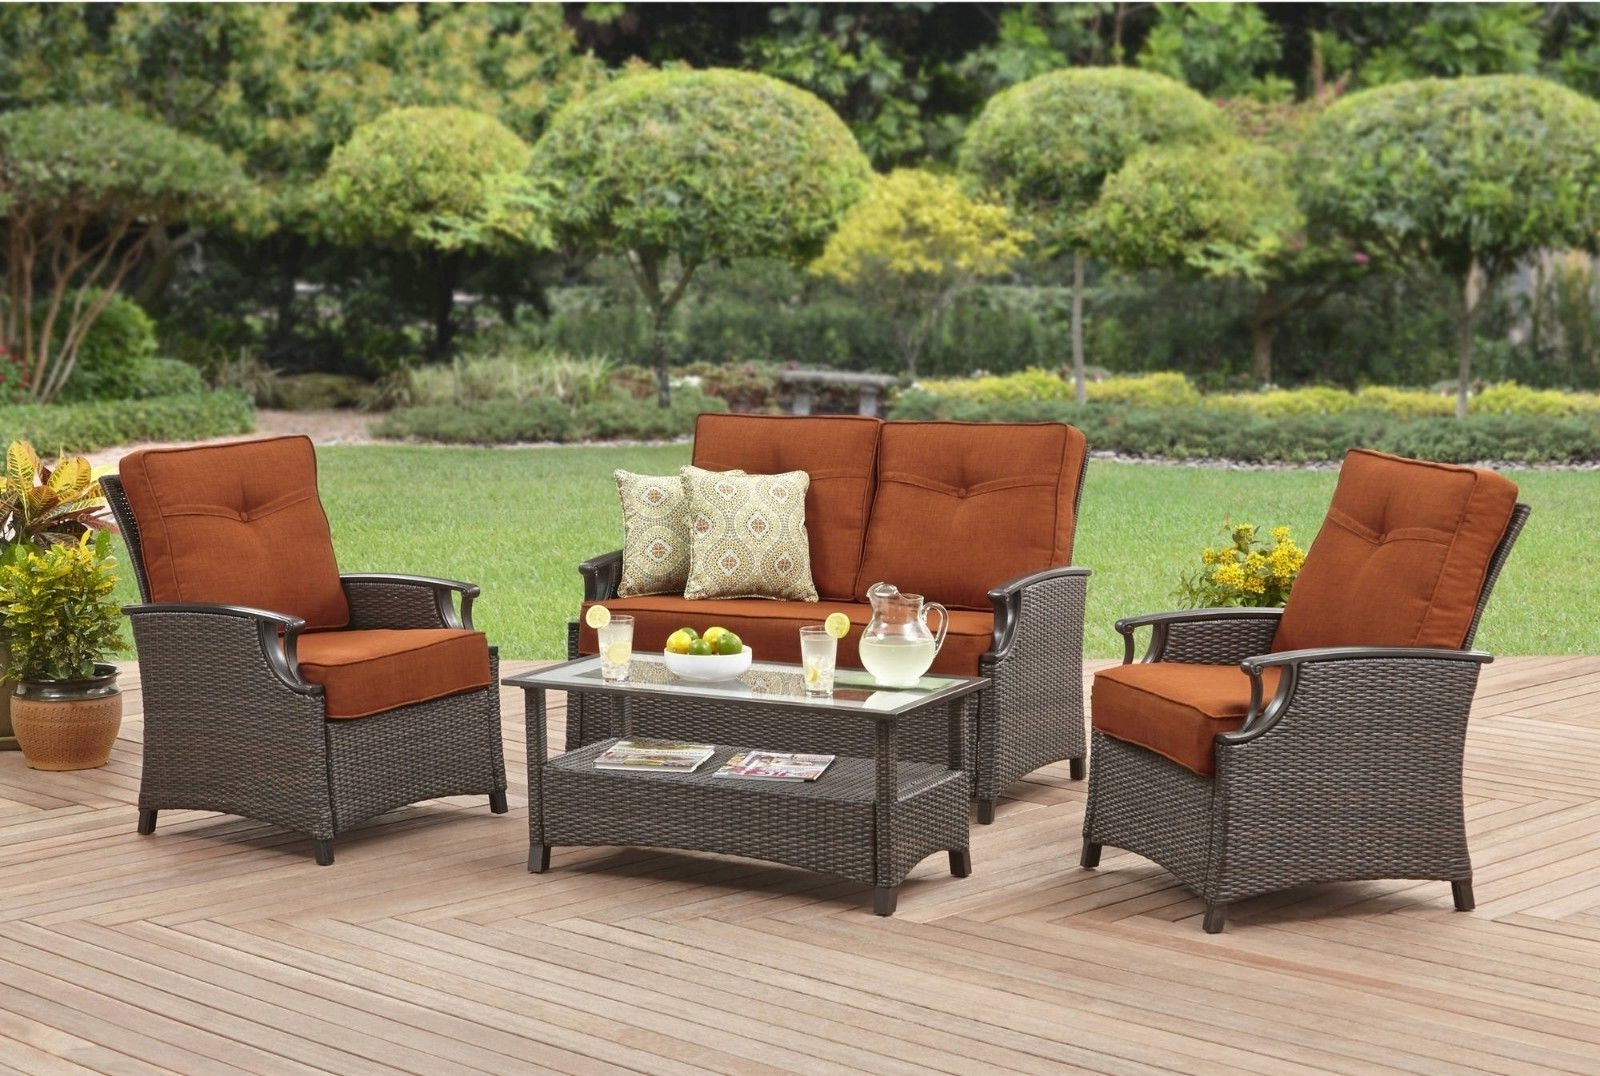 Ebay Patio Conversation Sets With 2017 4 Piece Conversation Patio Furniture Set Wiker Sofa Outdoor Loveseat (View 2 of 15)